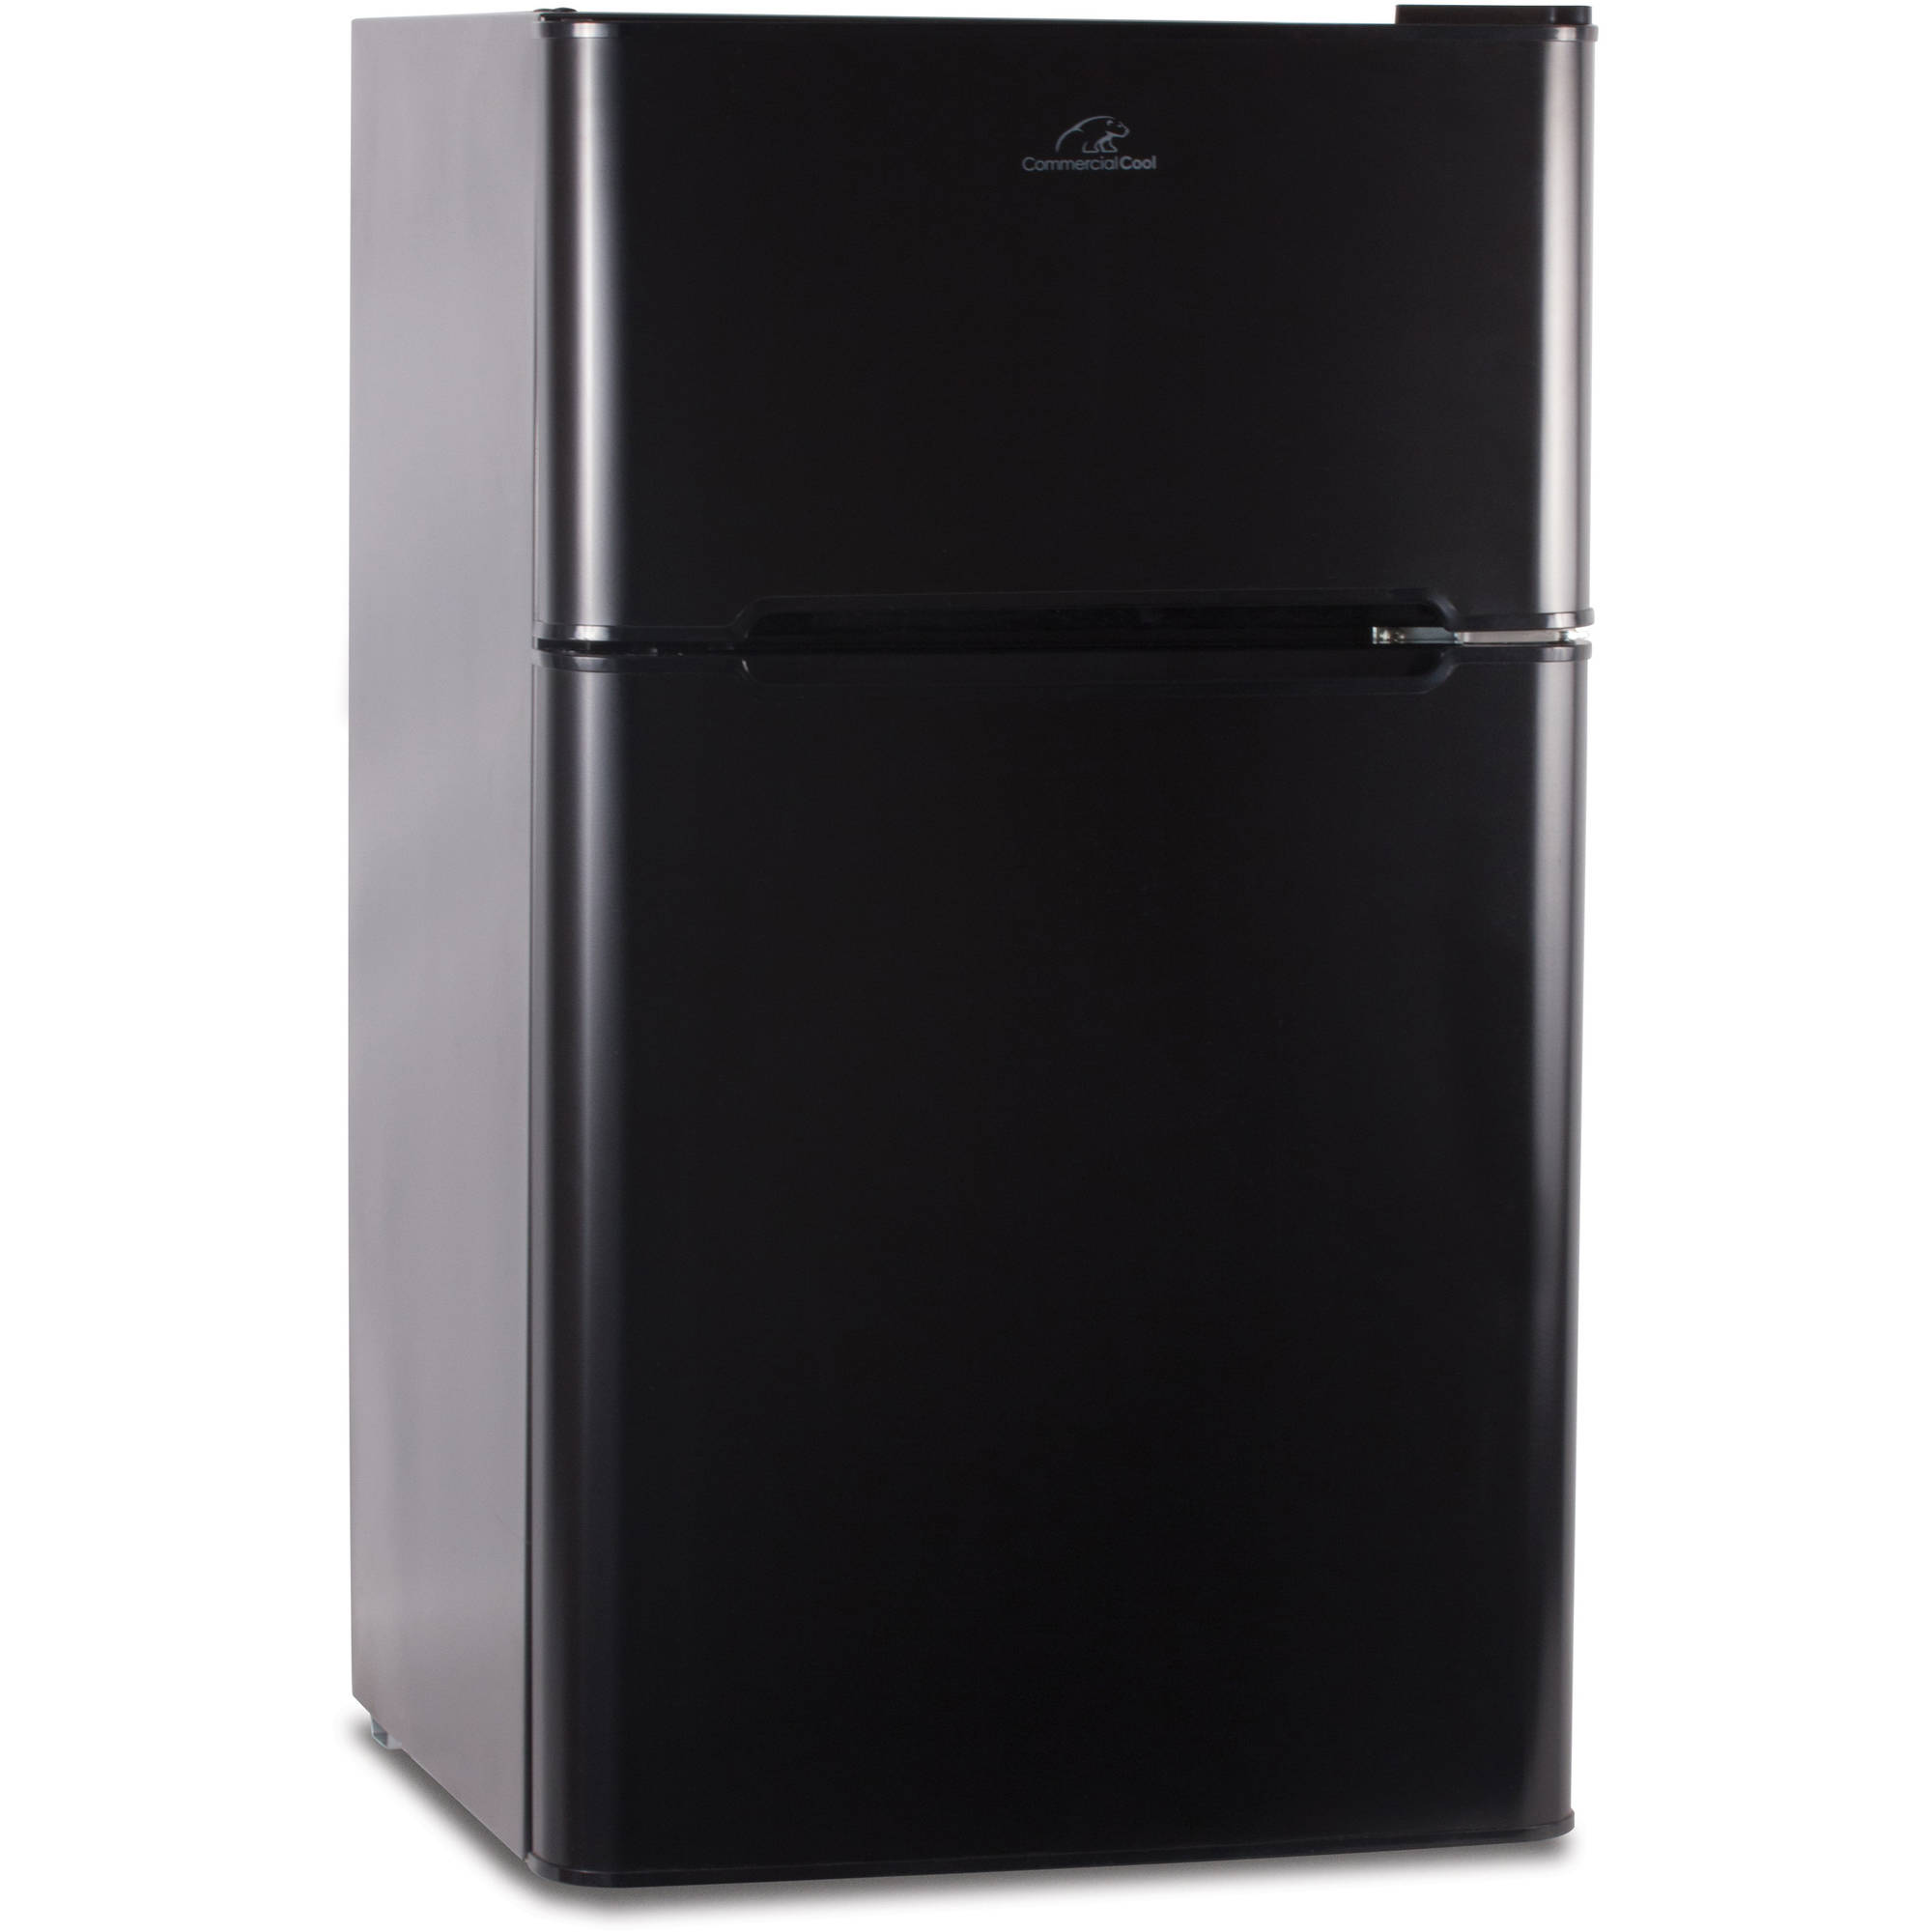 Commercial Cool 3.2 cu ft Refrigerator with Freezer, Black